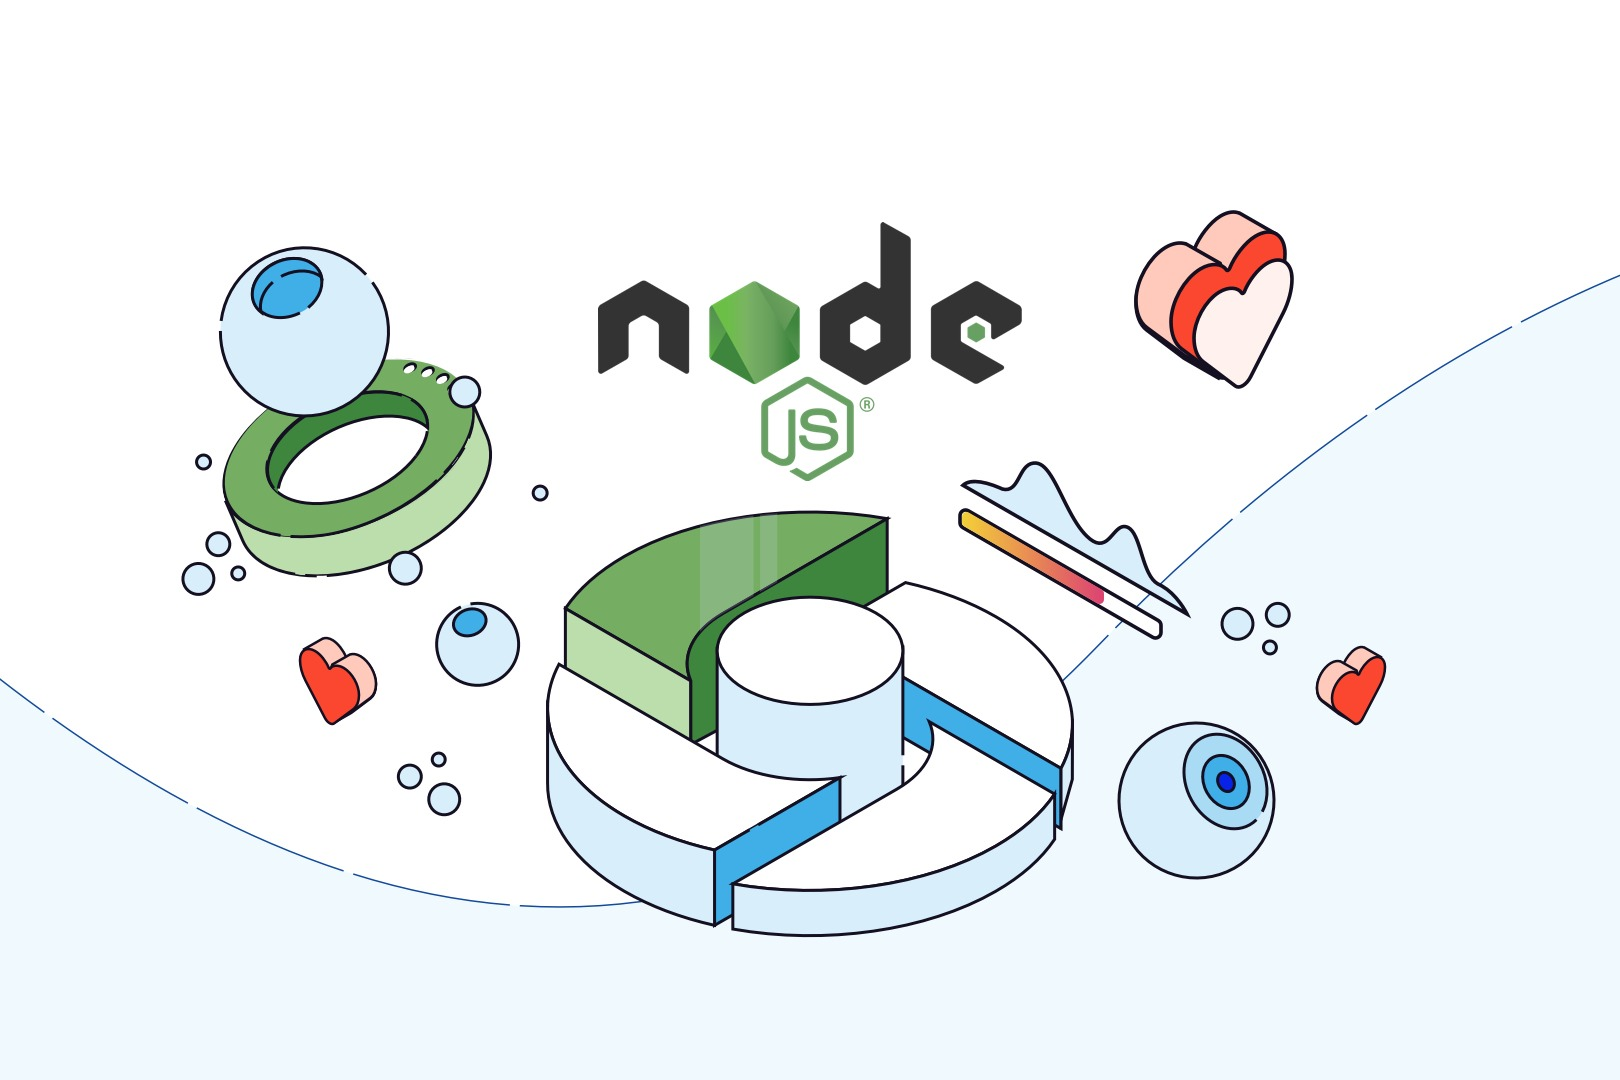 Why use Node.js for web development? Scalability, performance and other benefits of Node based on famous web applications